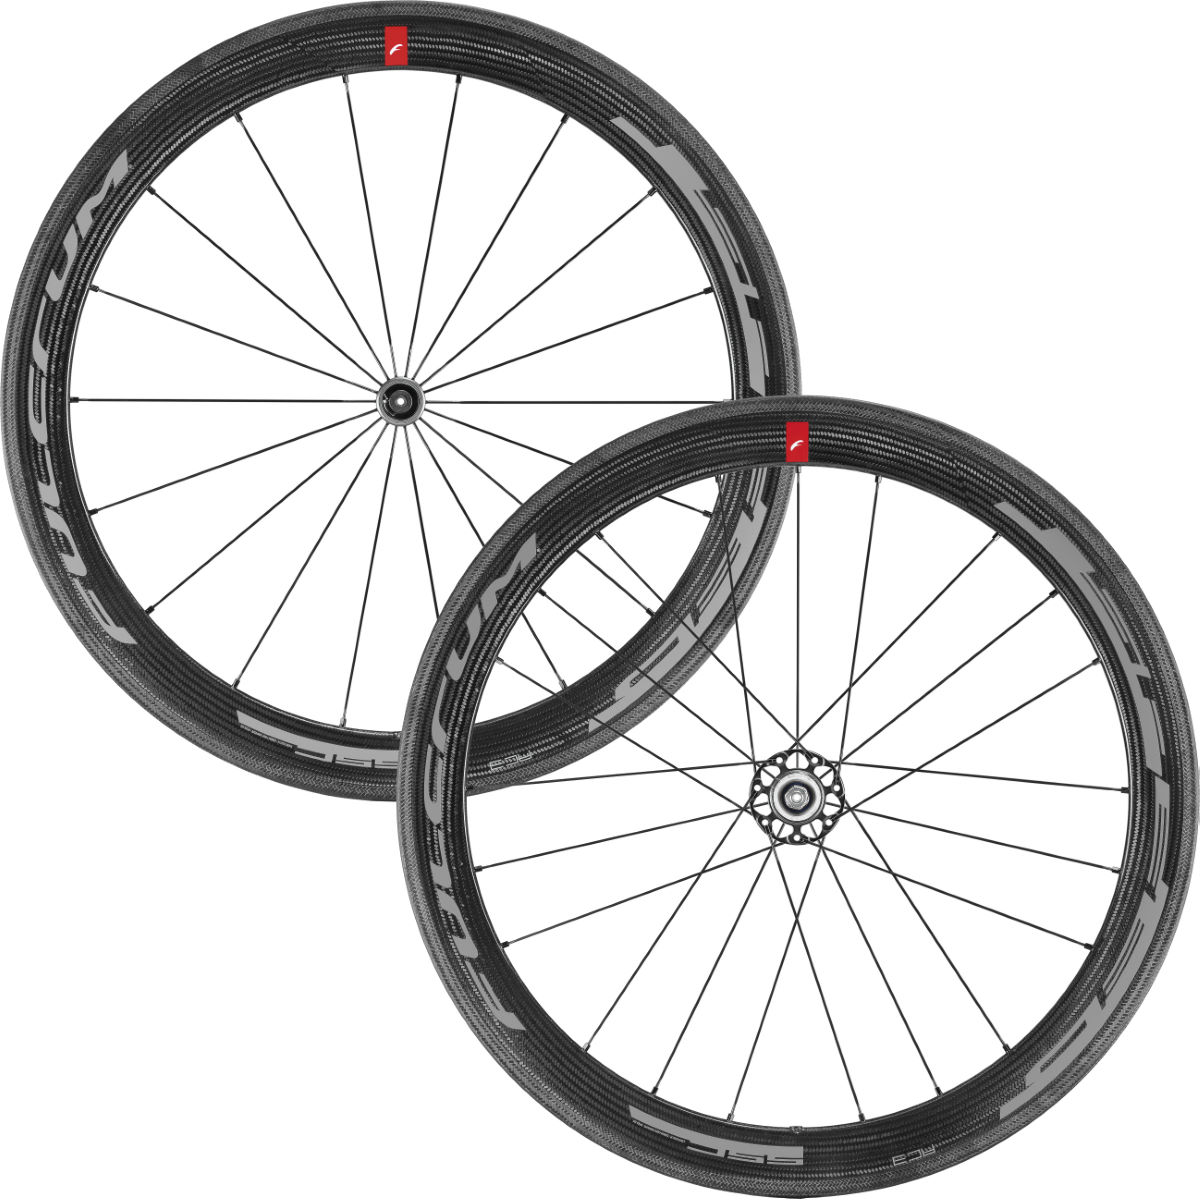 Road wheels set Fulcrum SPEED 55C C17 Carbon - Competition wheels